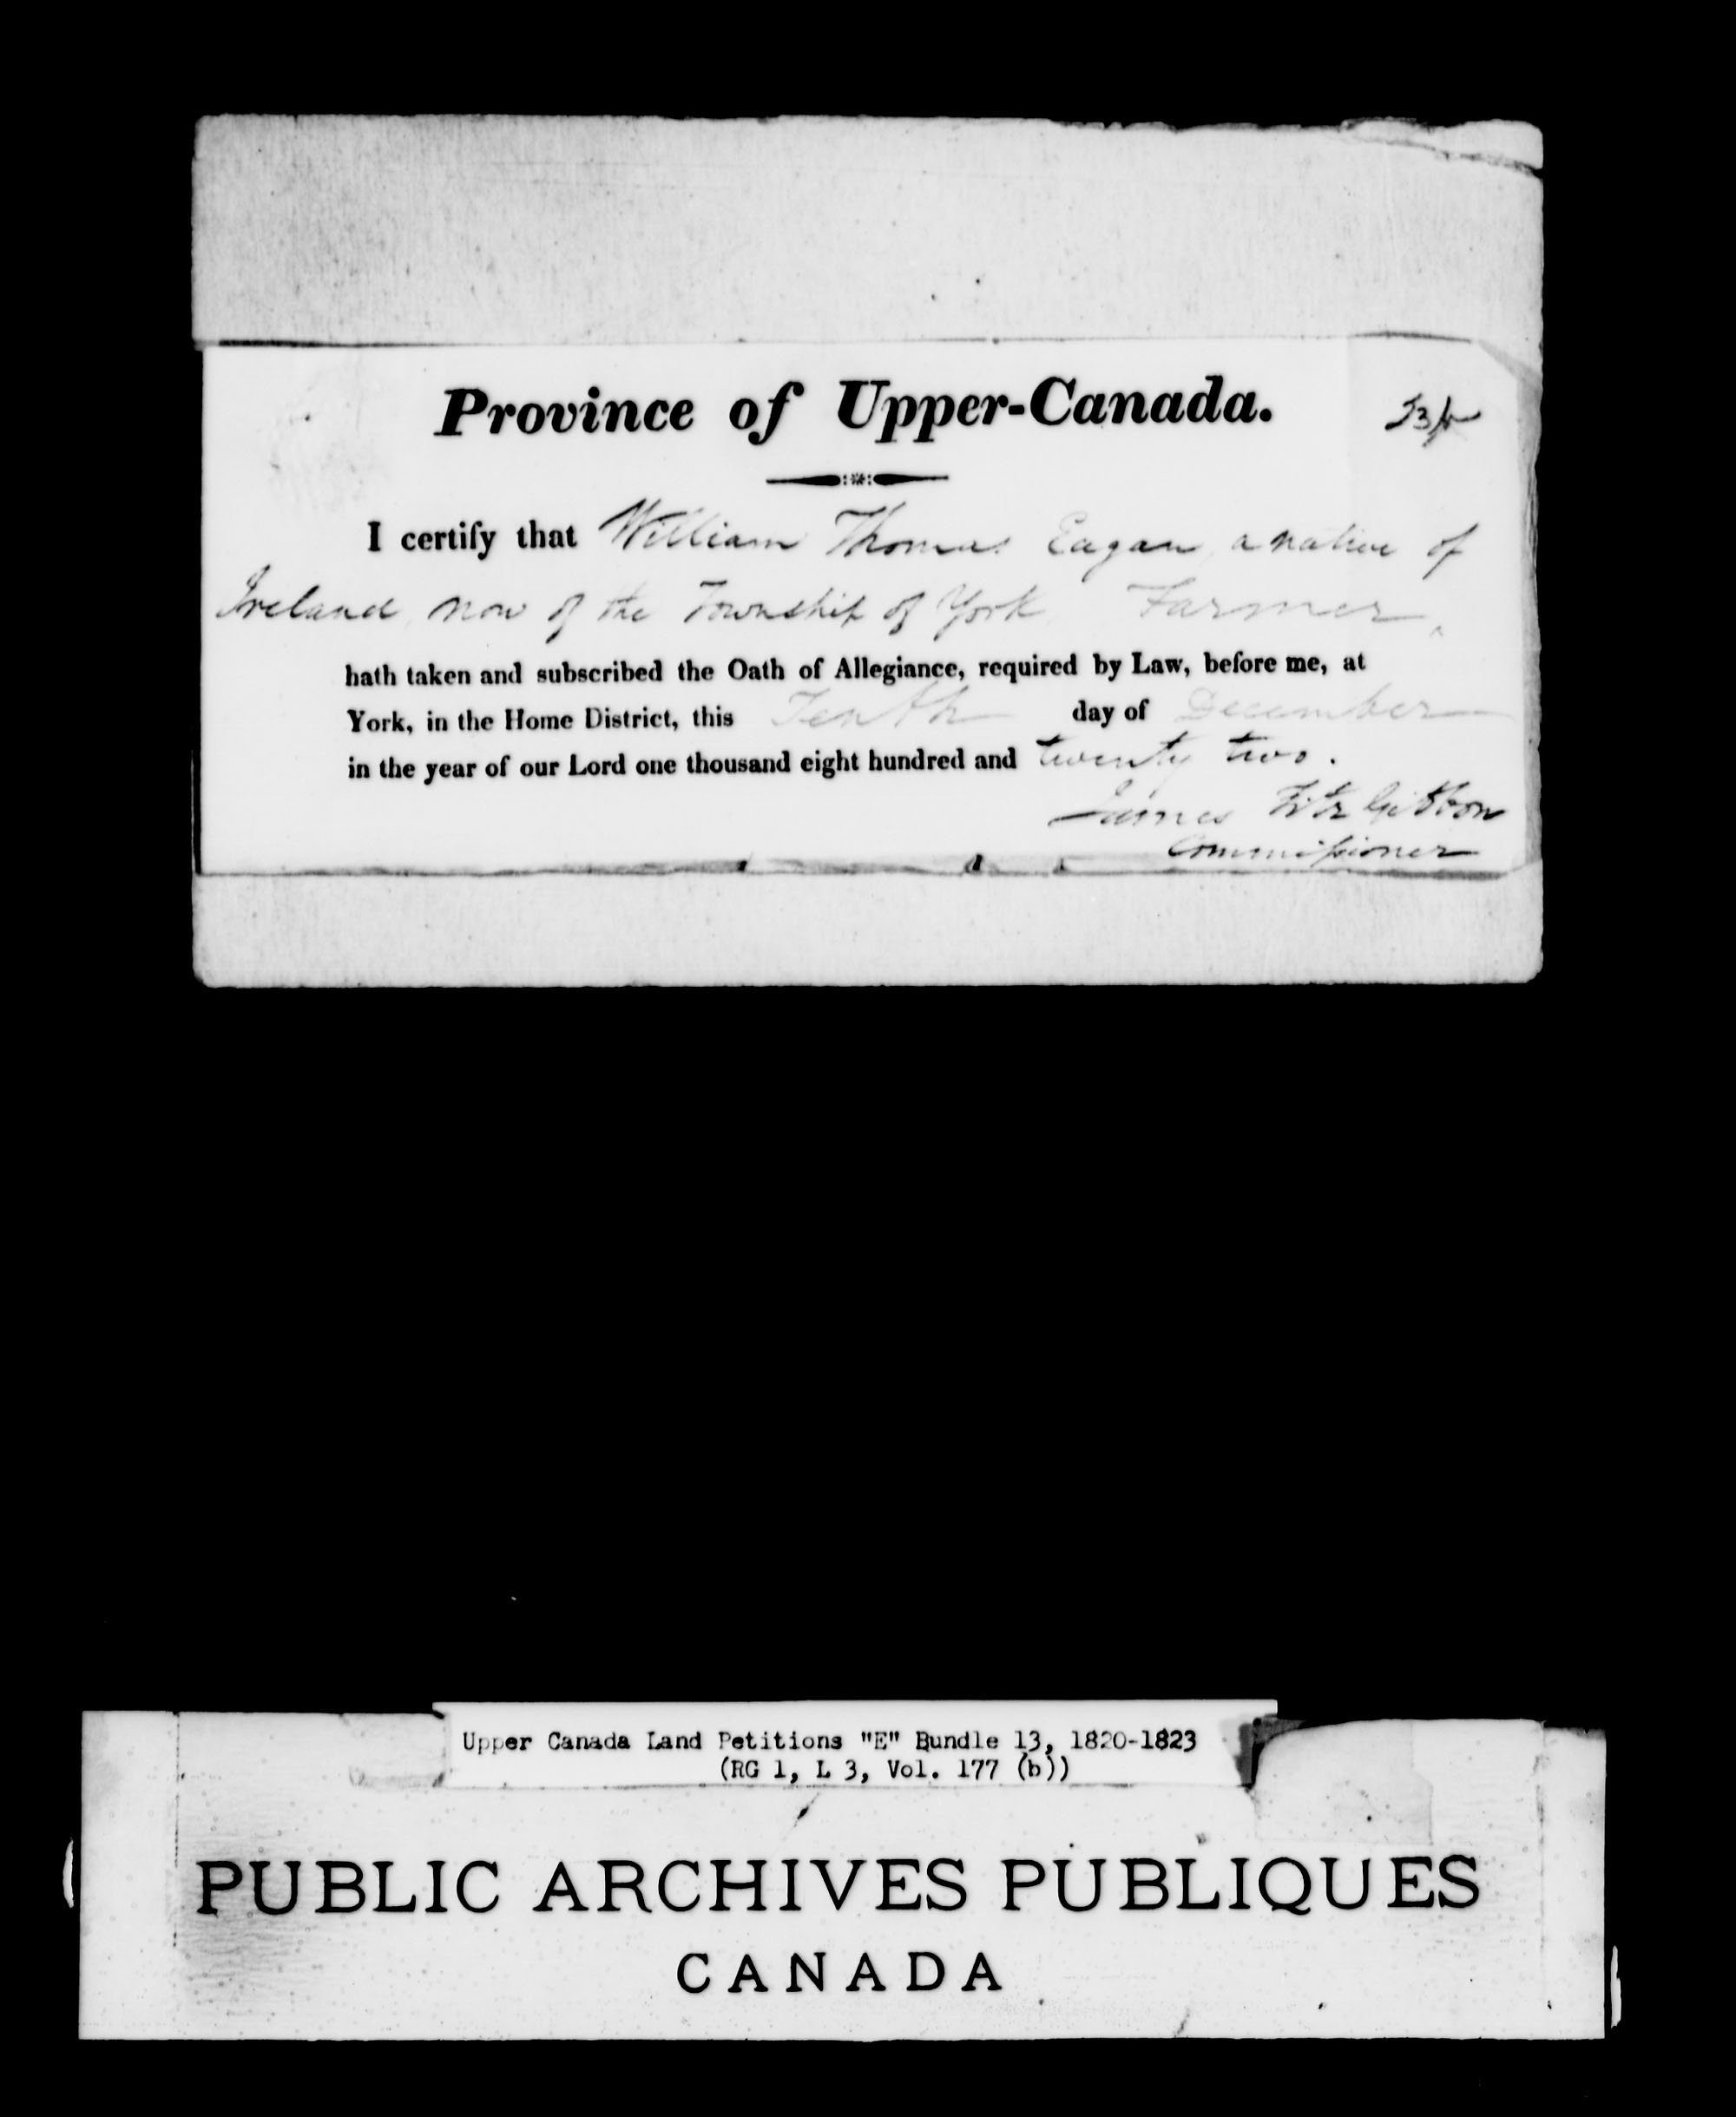 Title: Upper Canada Land Petitions (1763-1865) - Mikan Number: 205131 - Microform: c-1888